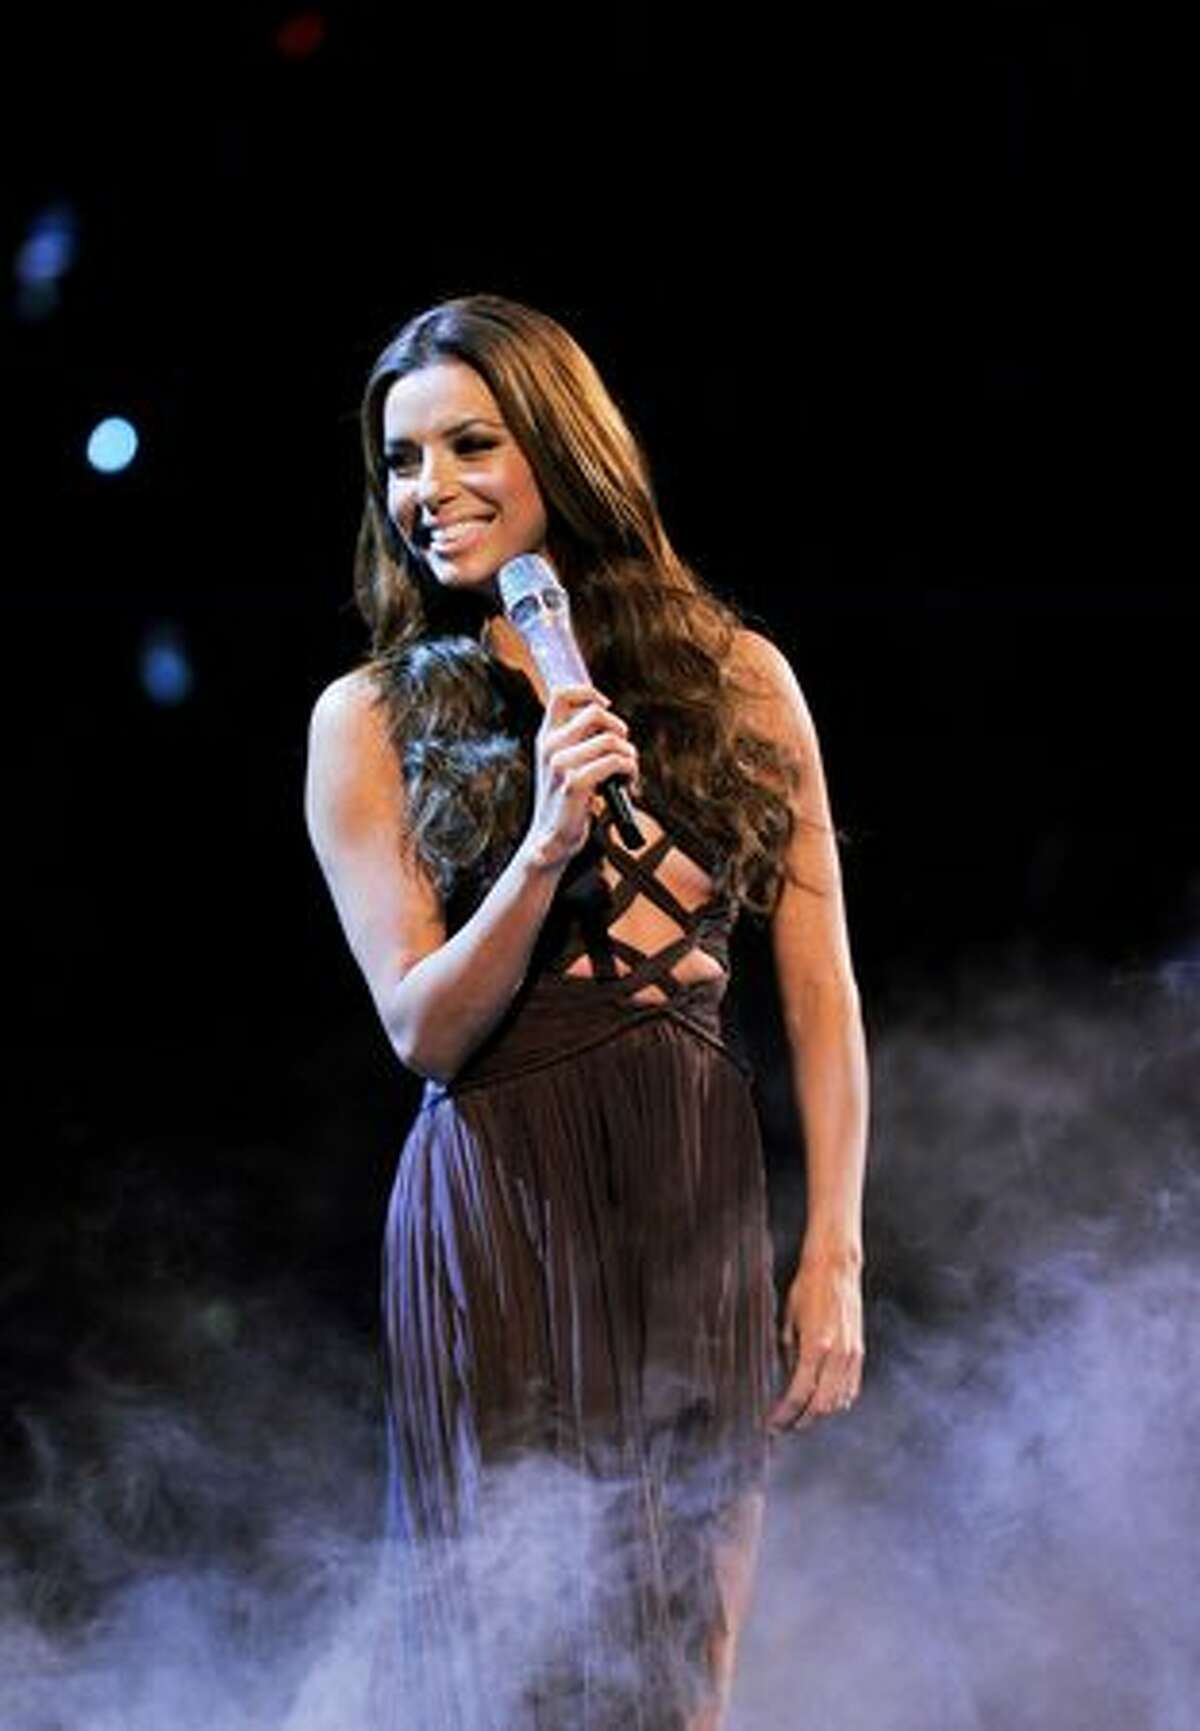 Host Eva Longoria Parker on stage during the MTV Europe Music Awards 2010 live show at La Caja Magica in Madrid, Spain, on Sunday, Nov. 7, 2010.